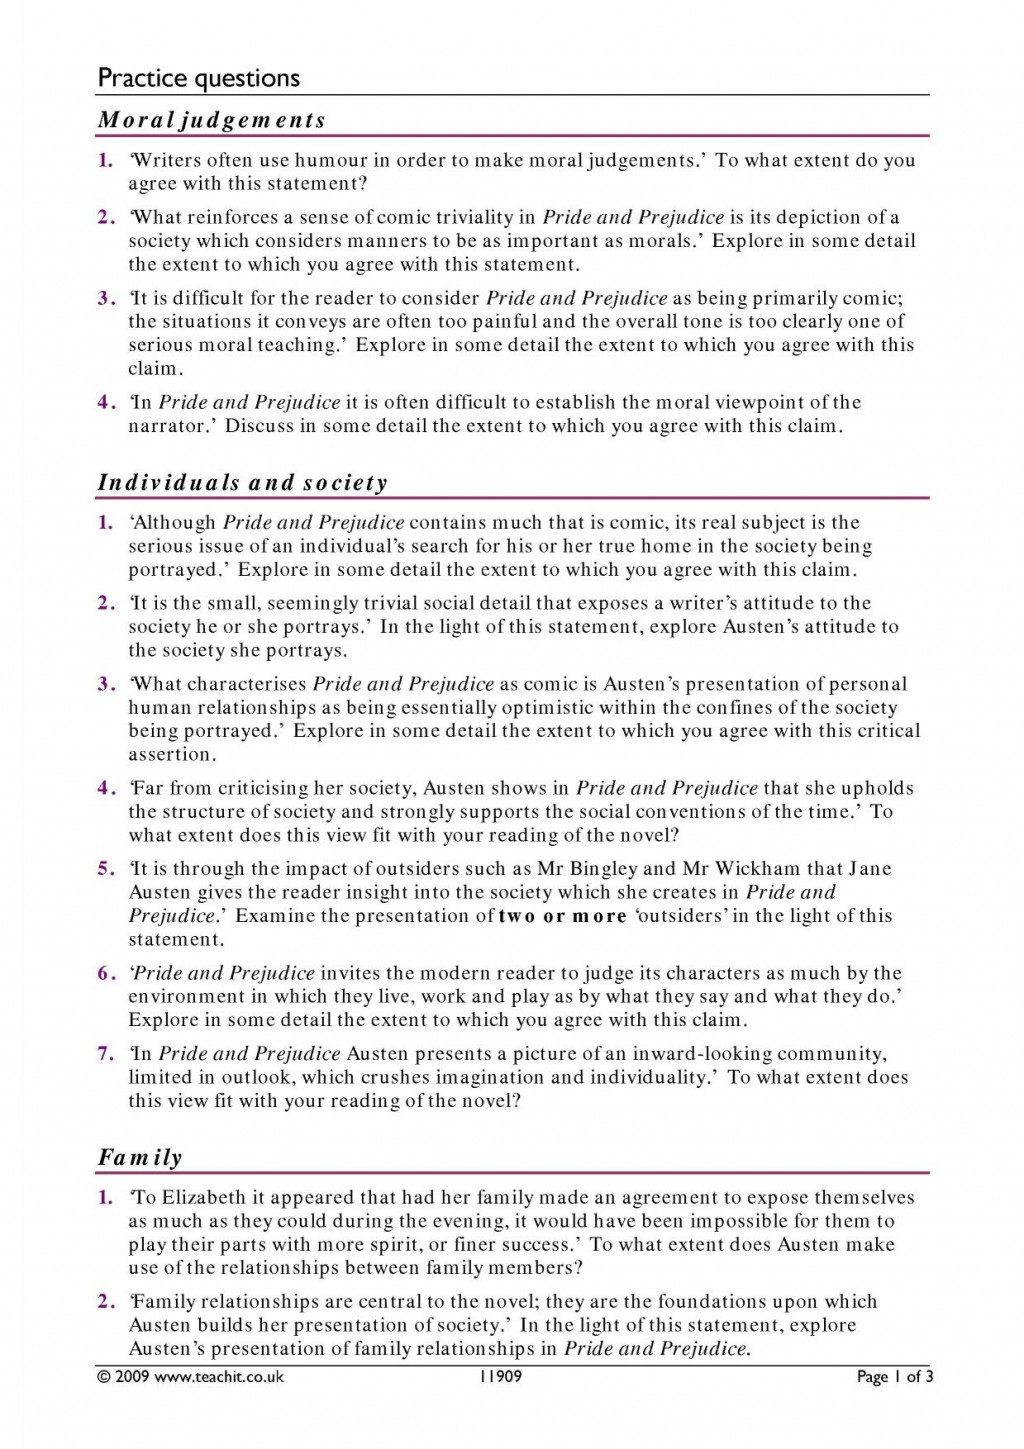 006 Essay Example Prejudice Pride And By Jane Austen Ks3 Write An On Goes Before Fall X My Nepal Country How Wonderful To Kill A Mockingbird Title Theme Topics Large